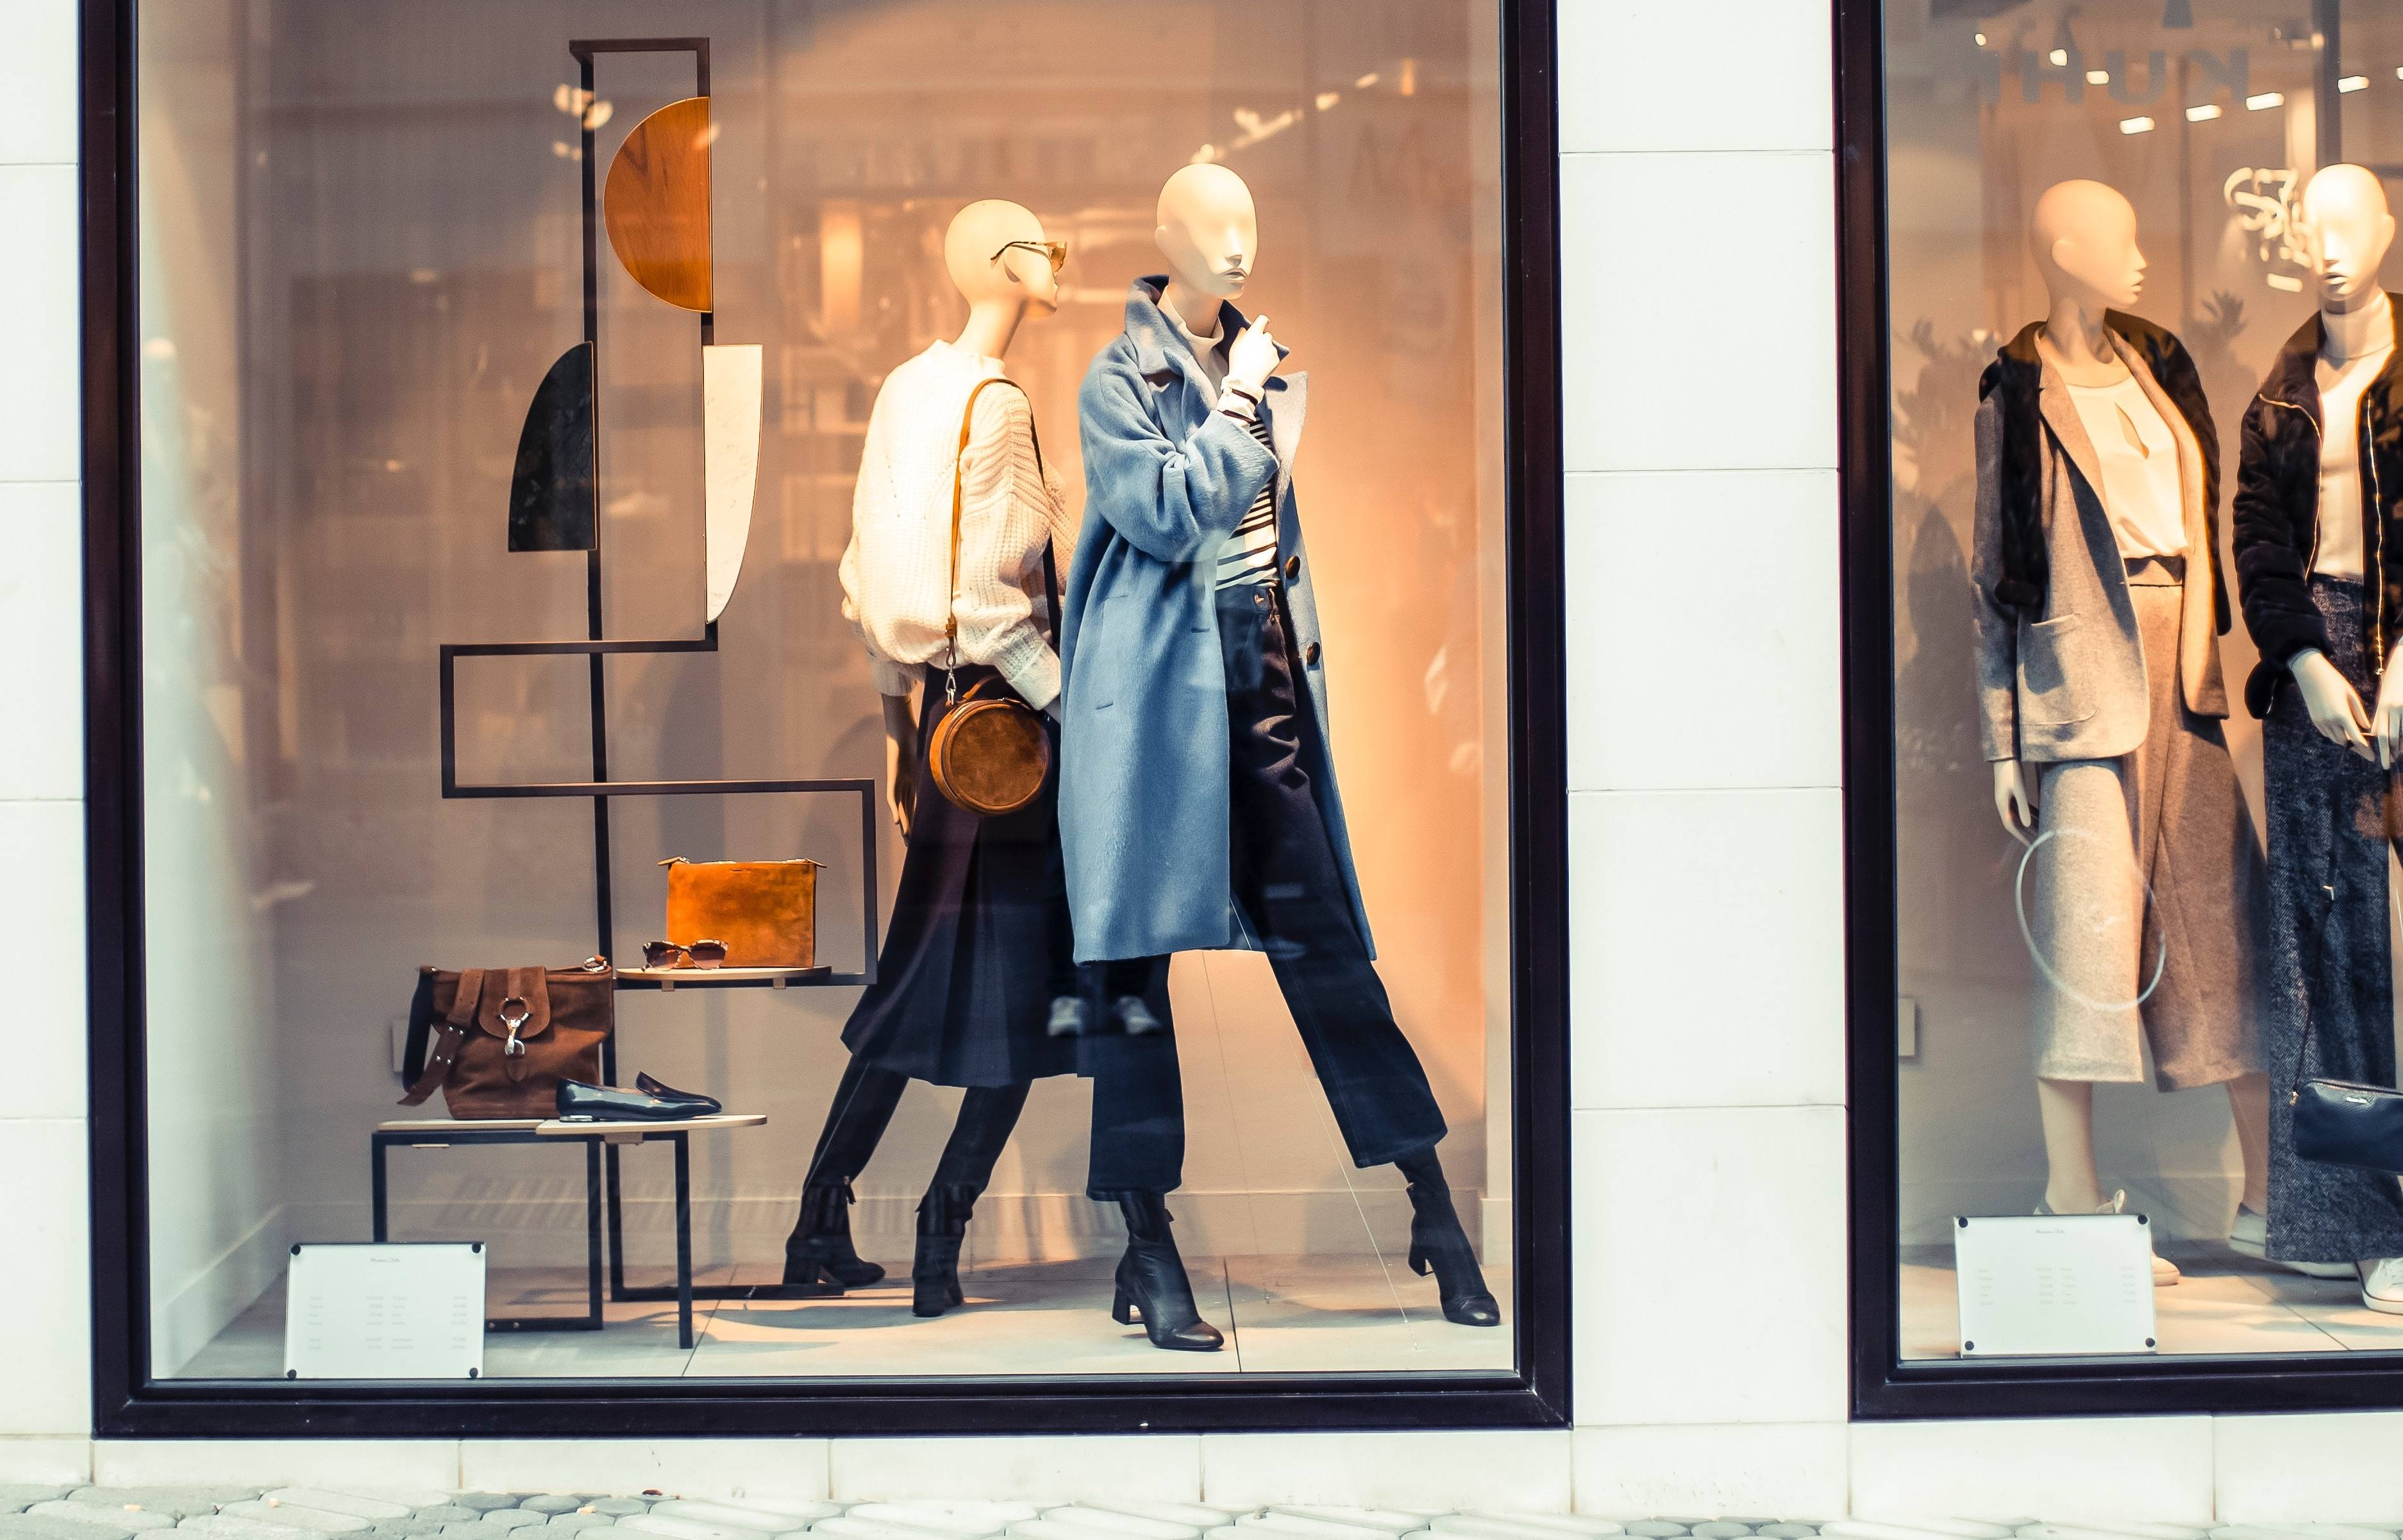 Speed to Sellout: Comparing Zara vs H&M